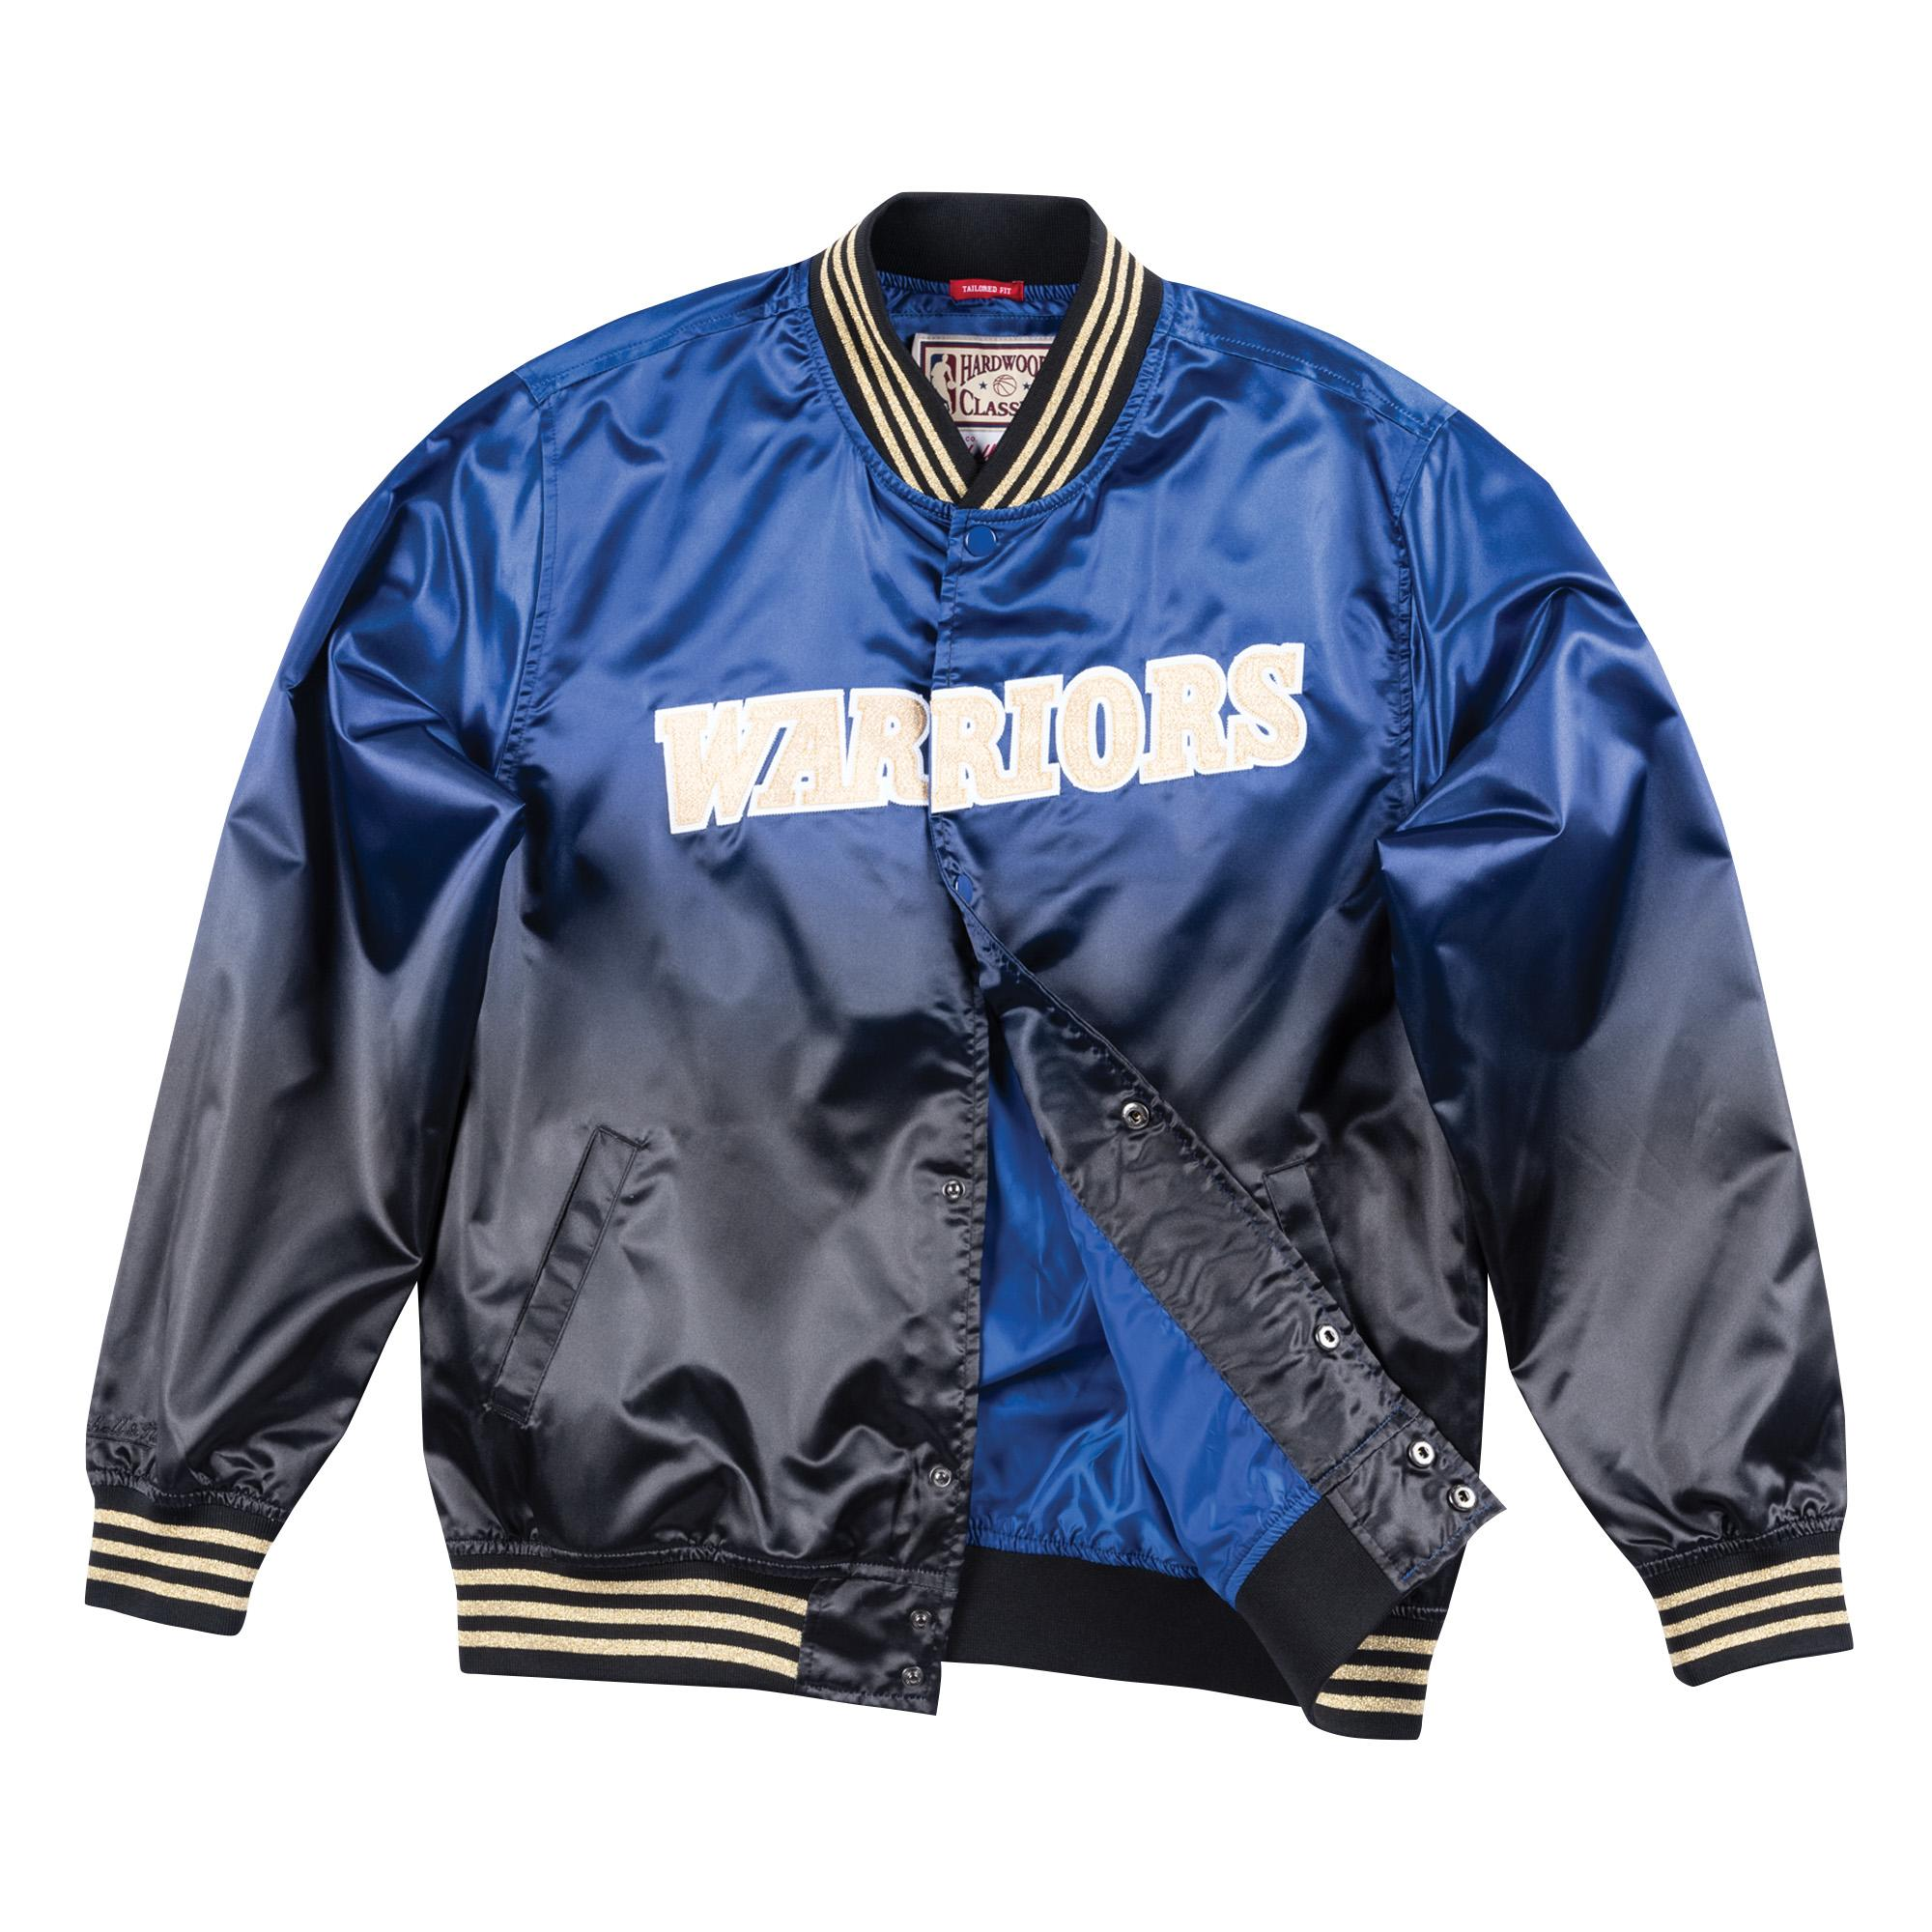 new arrival 4430a 2e546 Mitchell & Ness | Chinese New Year Satin Jacket Golden State ...